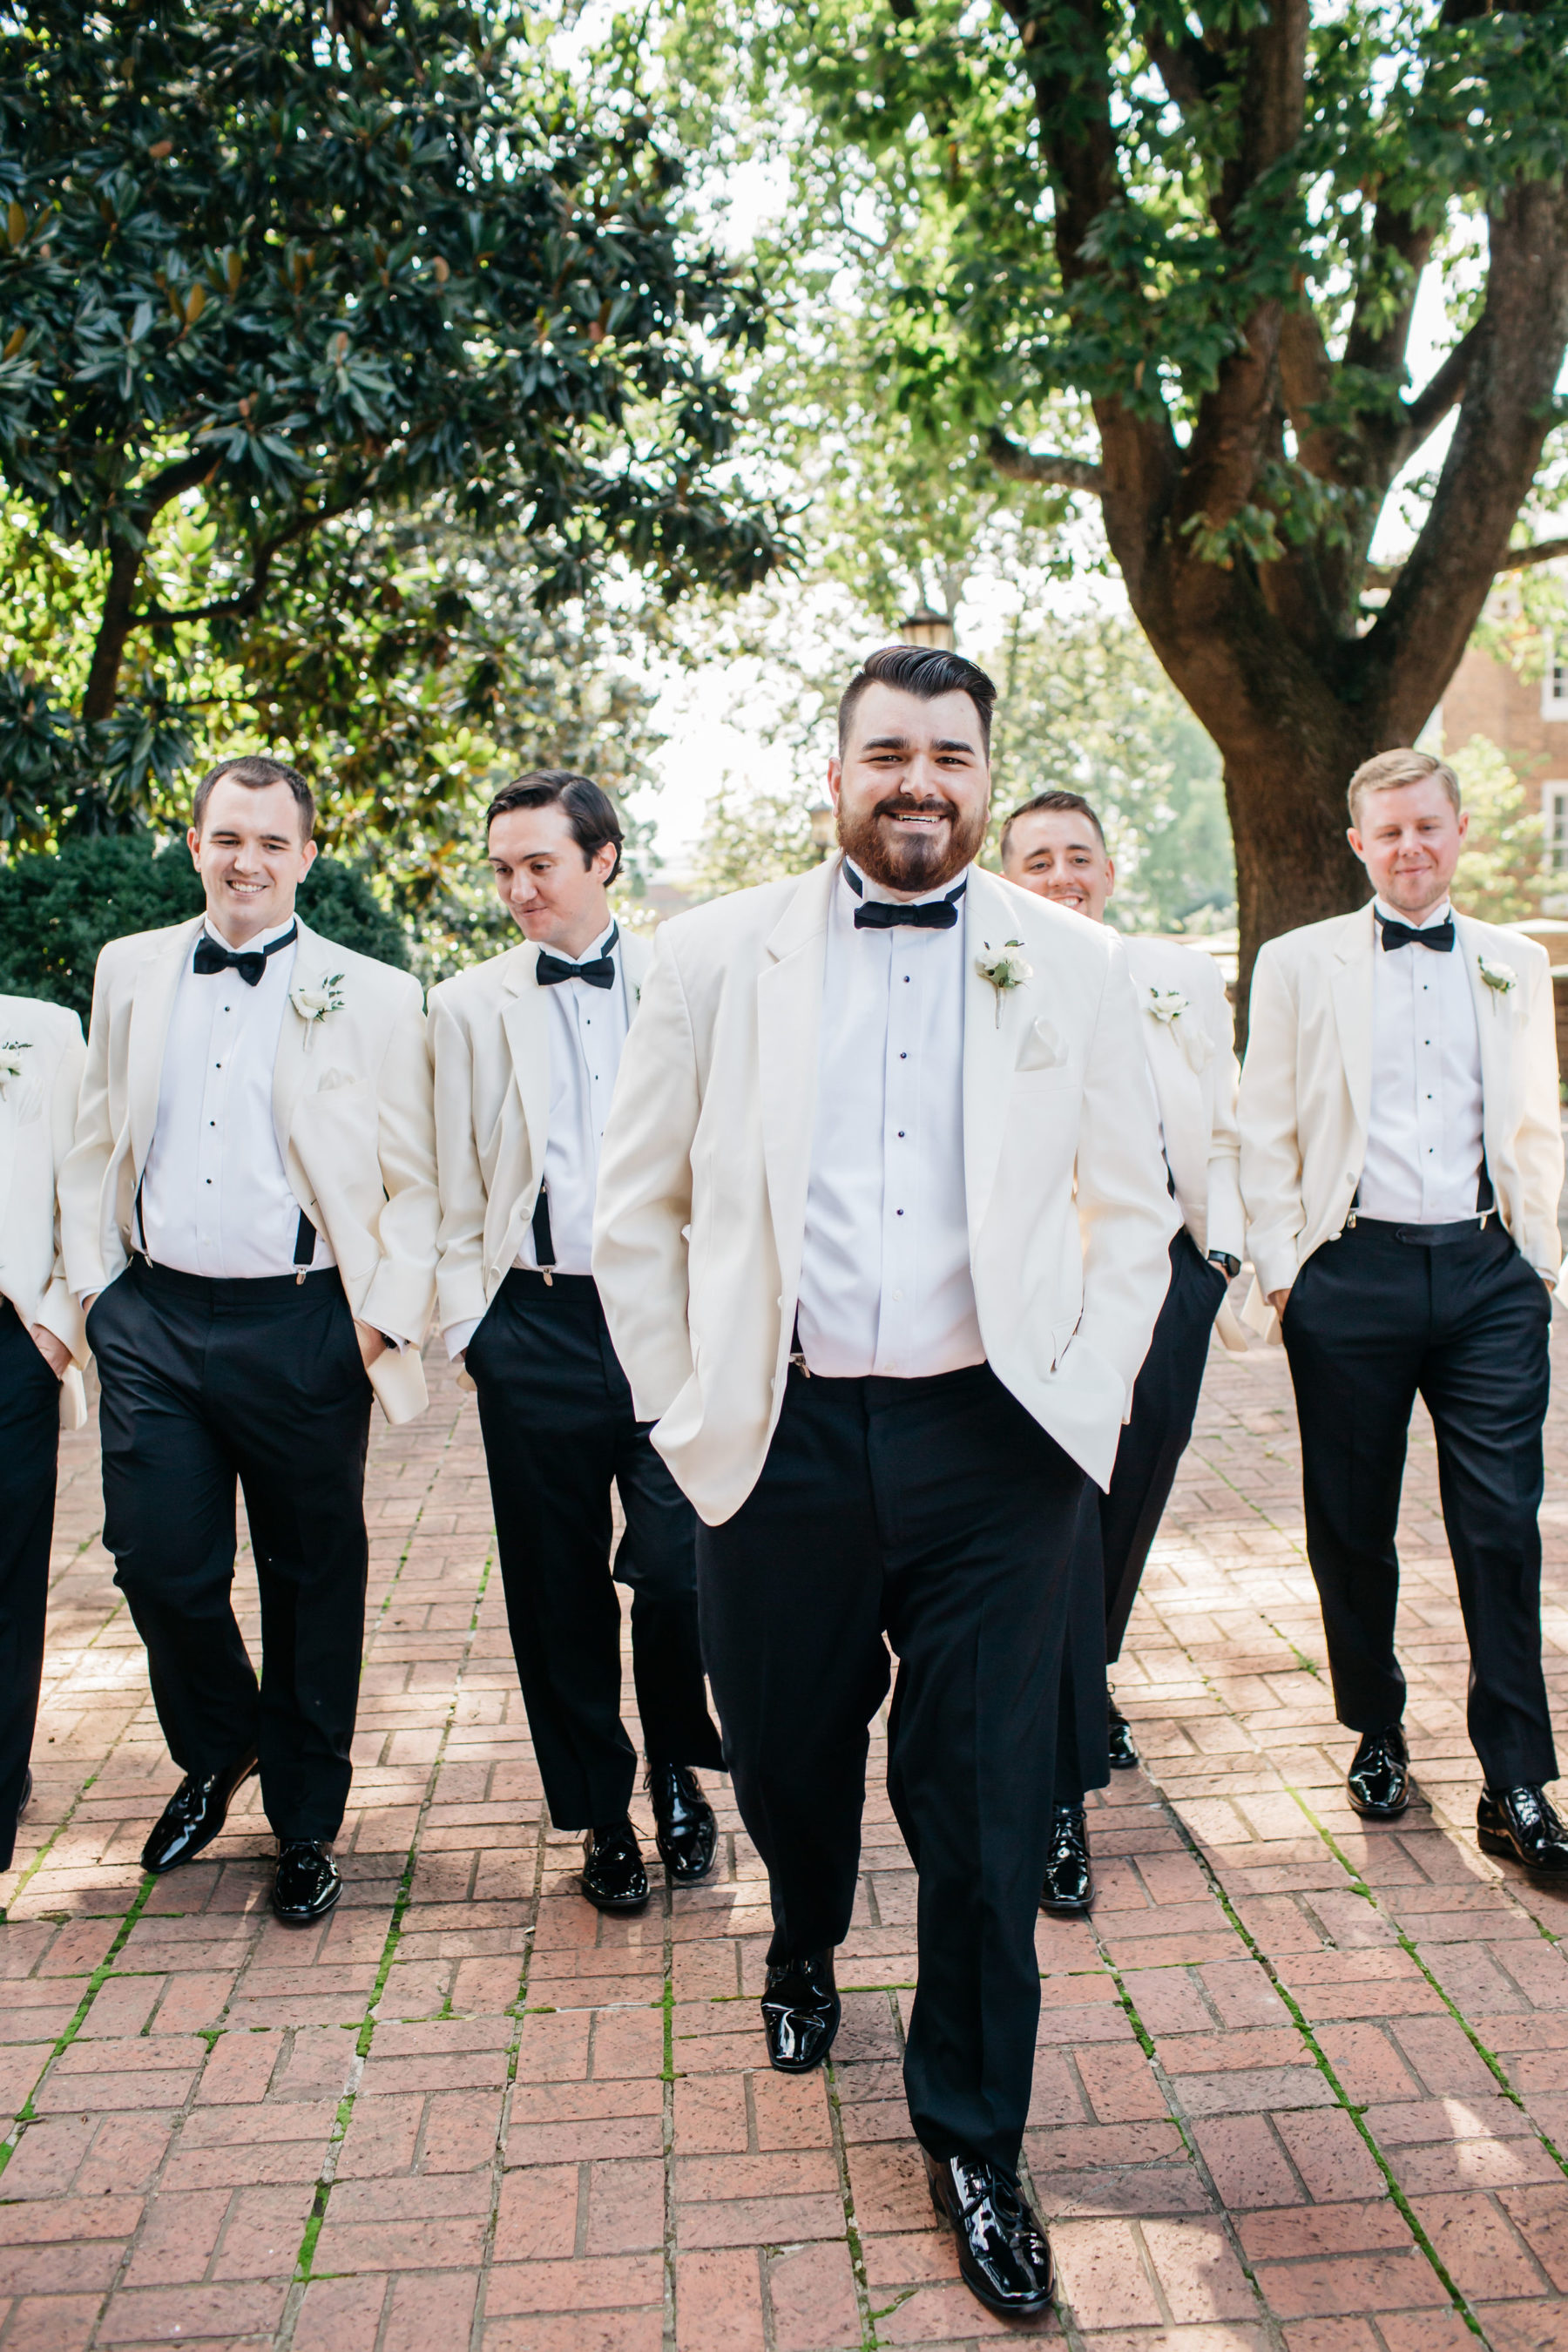 Simply Elegant Nashville Wedding captured by Meredith Teasley